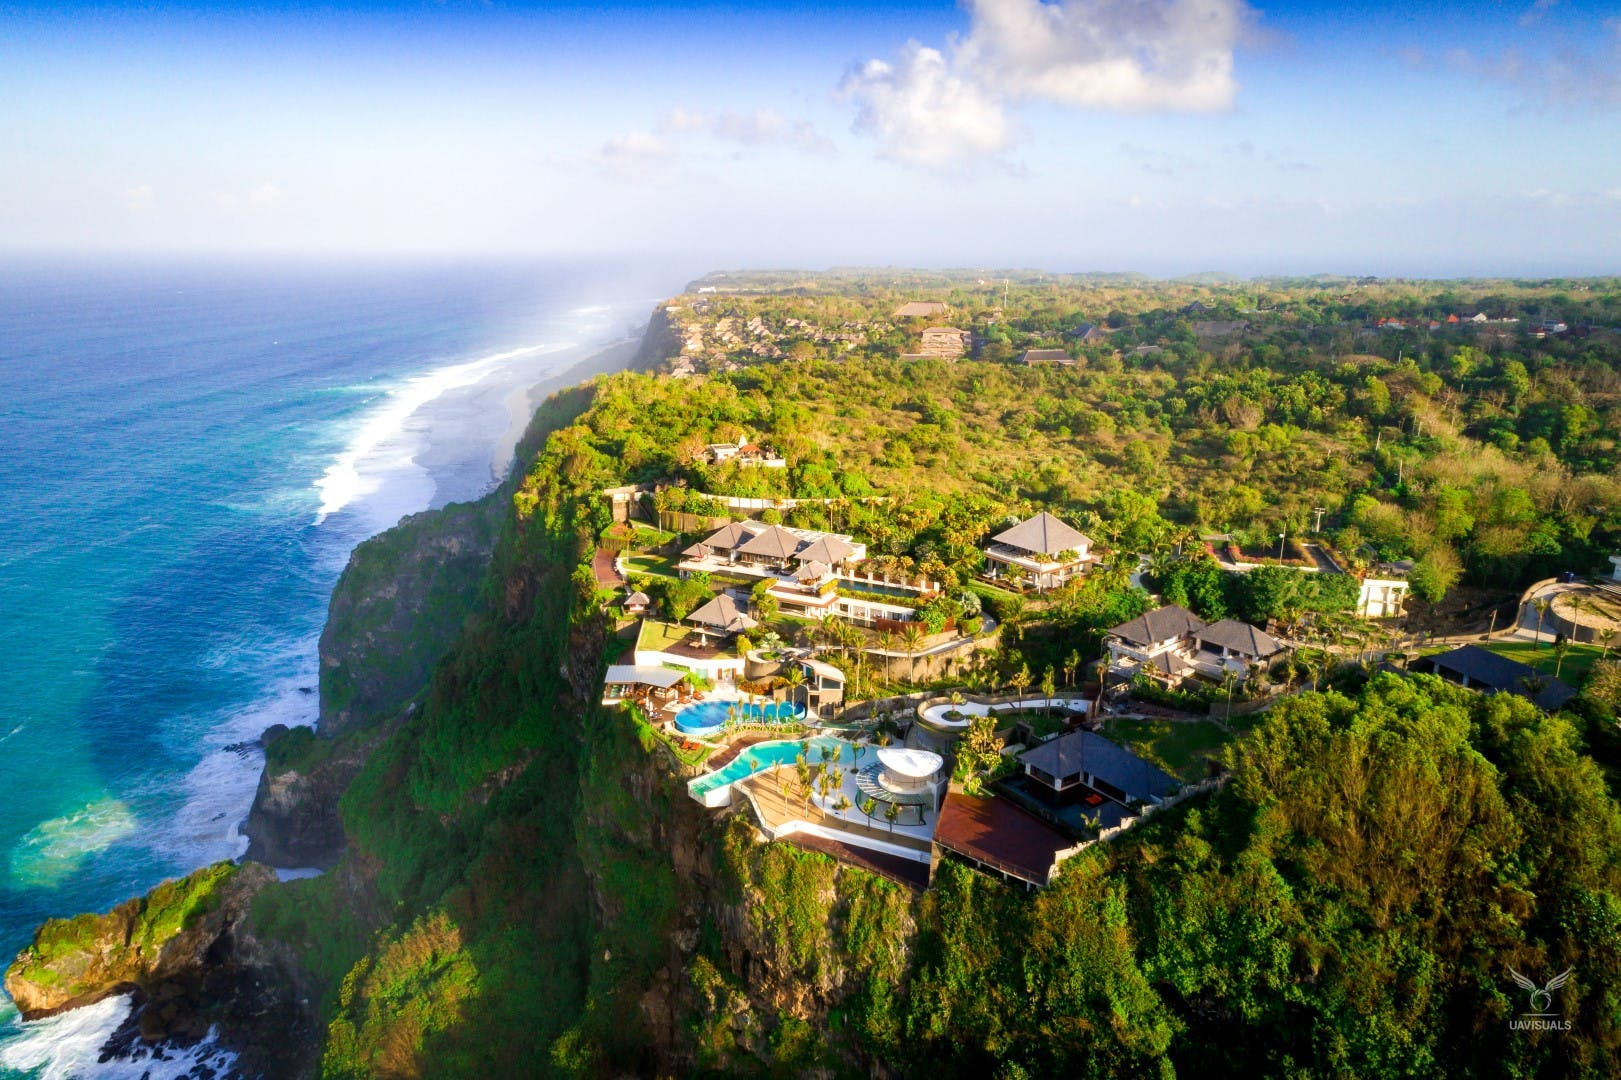 The edge Luxury Villa Resort, Uluwatu Bali